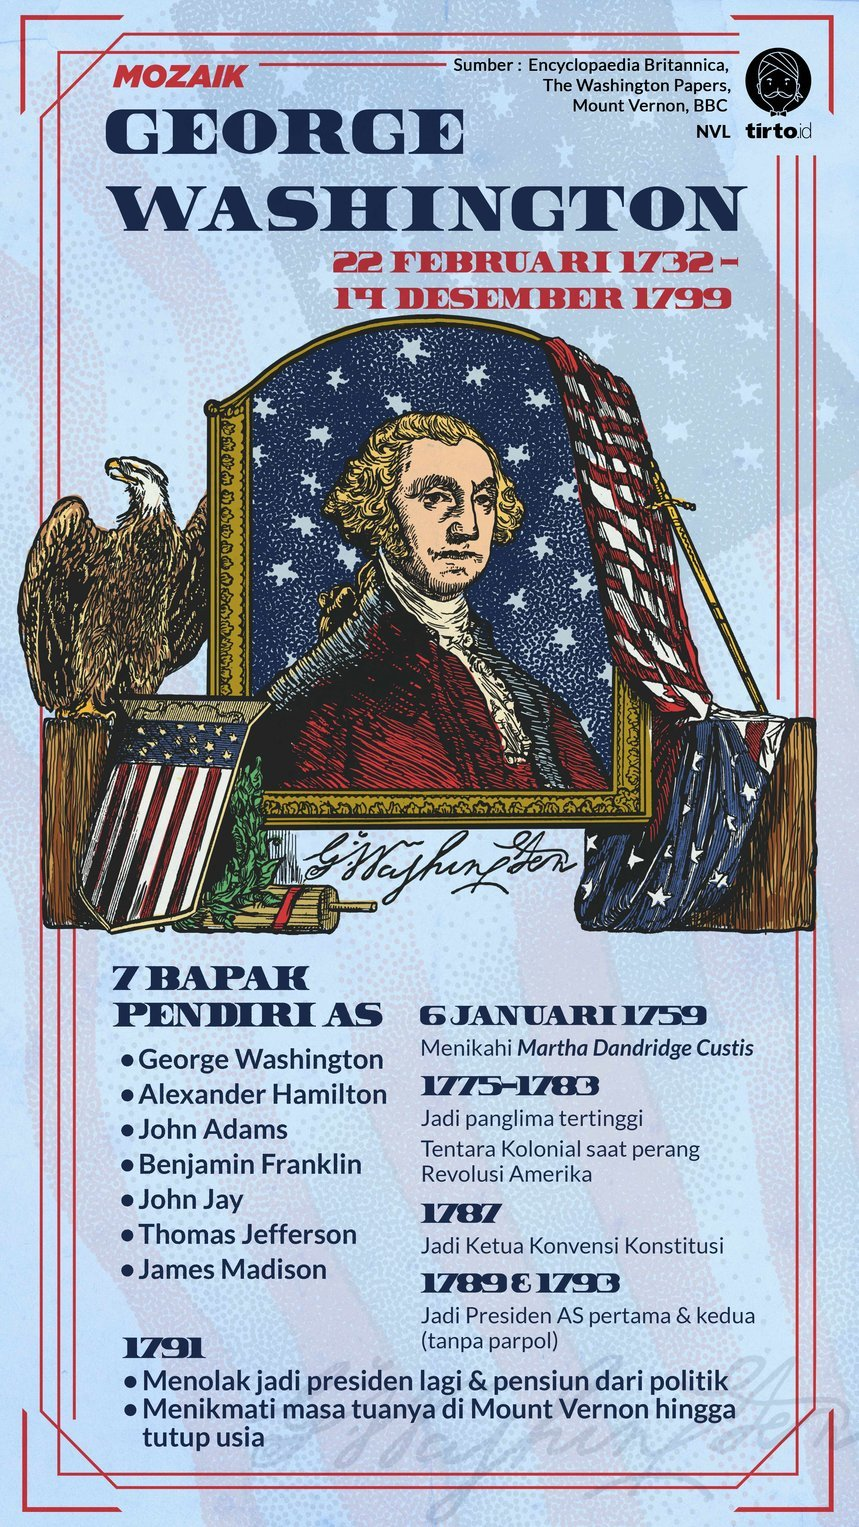 Infografik Mozaik George Washington